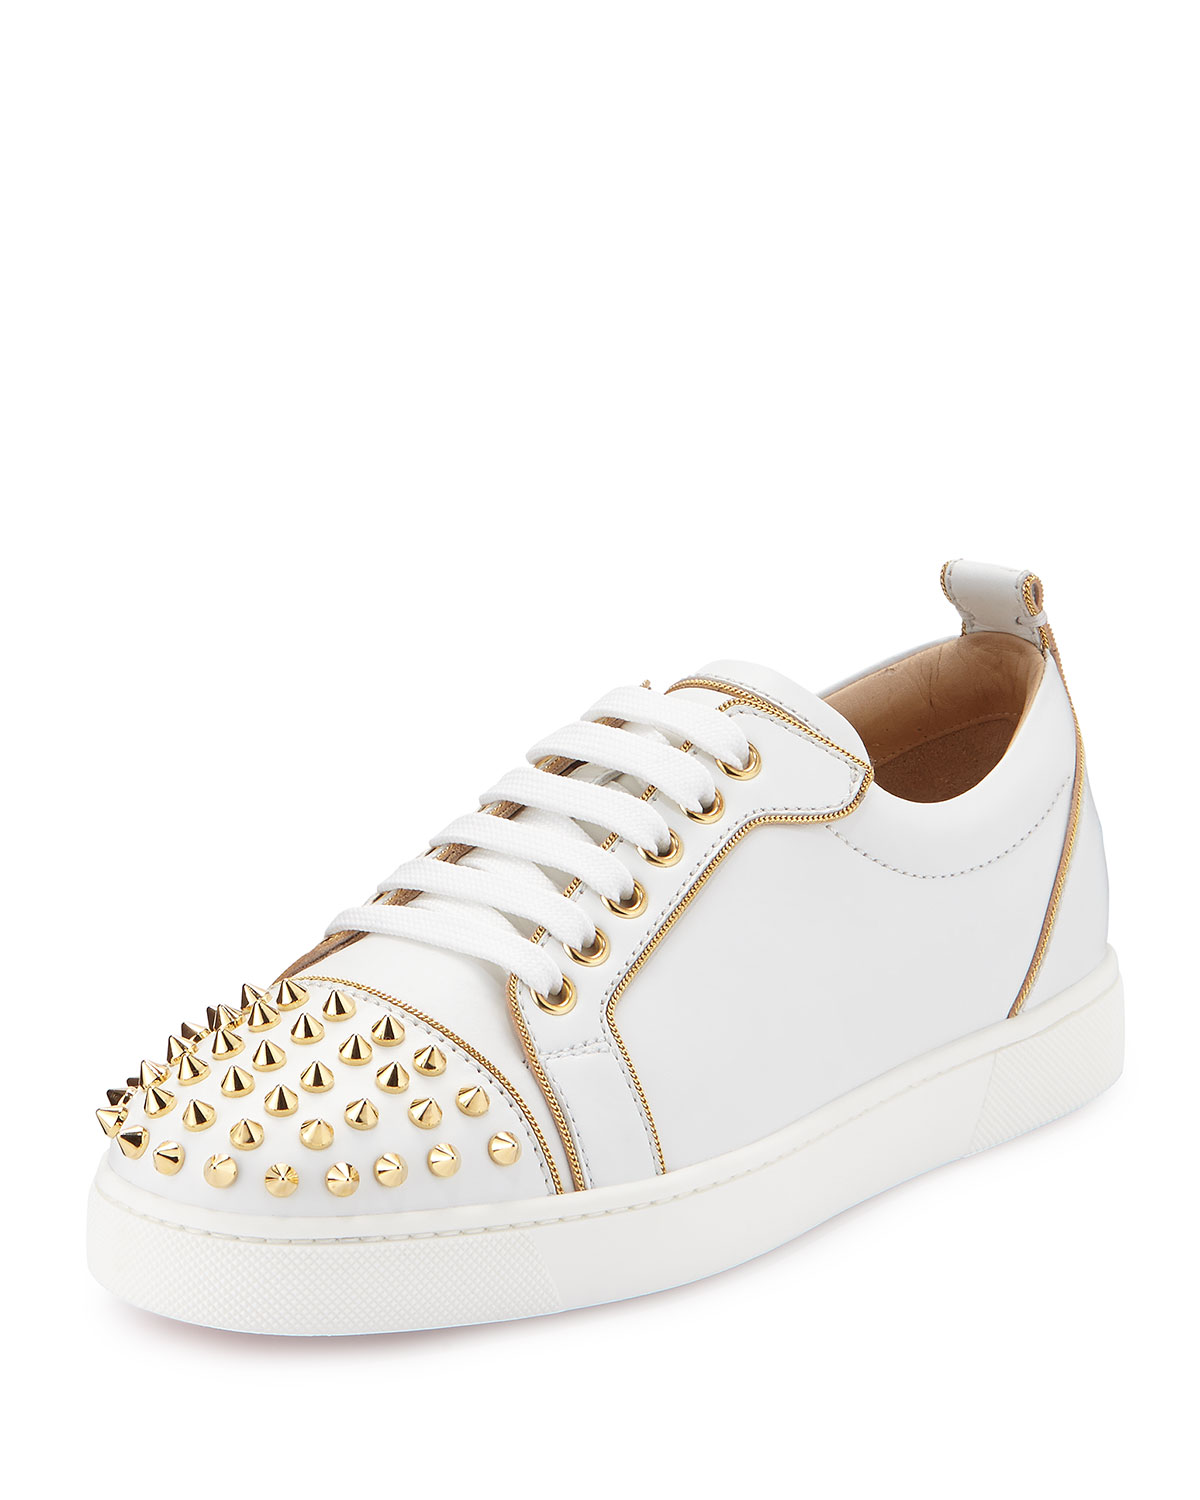 e02a7275040f Christian Louboutin Rush Spiked Leather Low-Top Sneaker